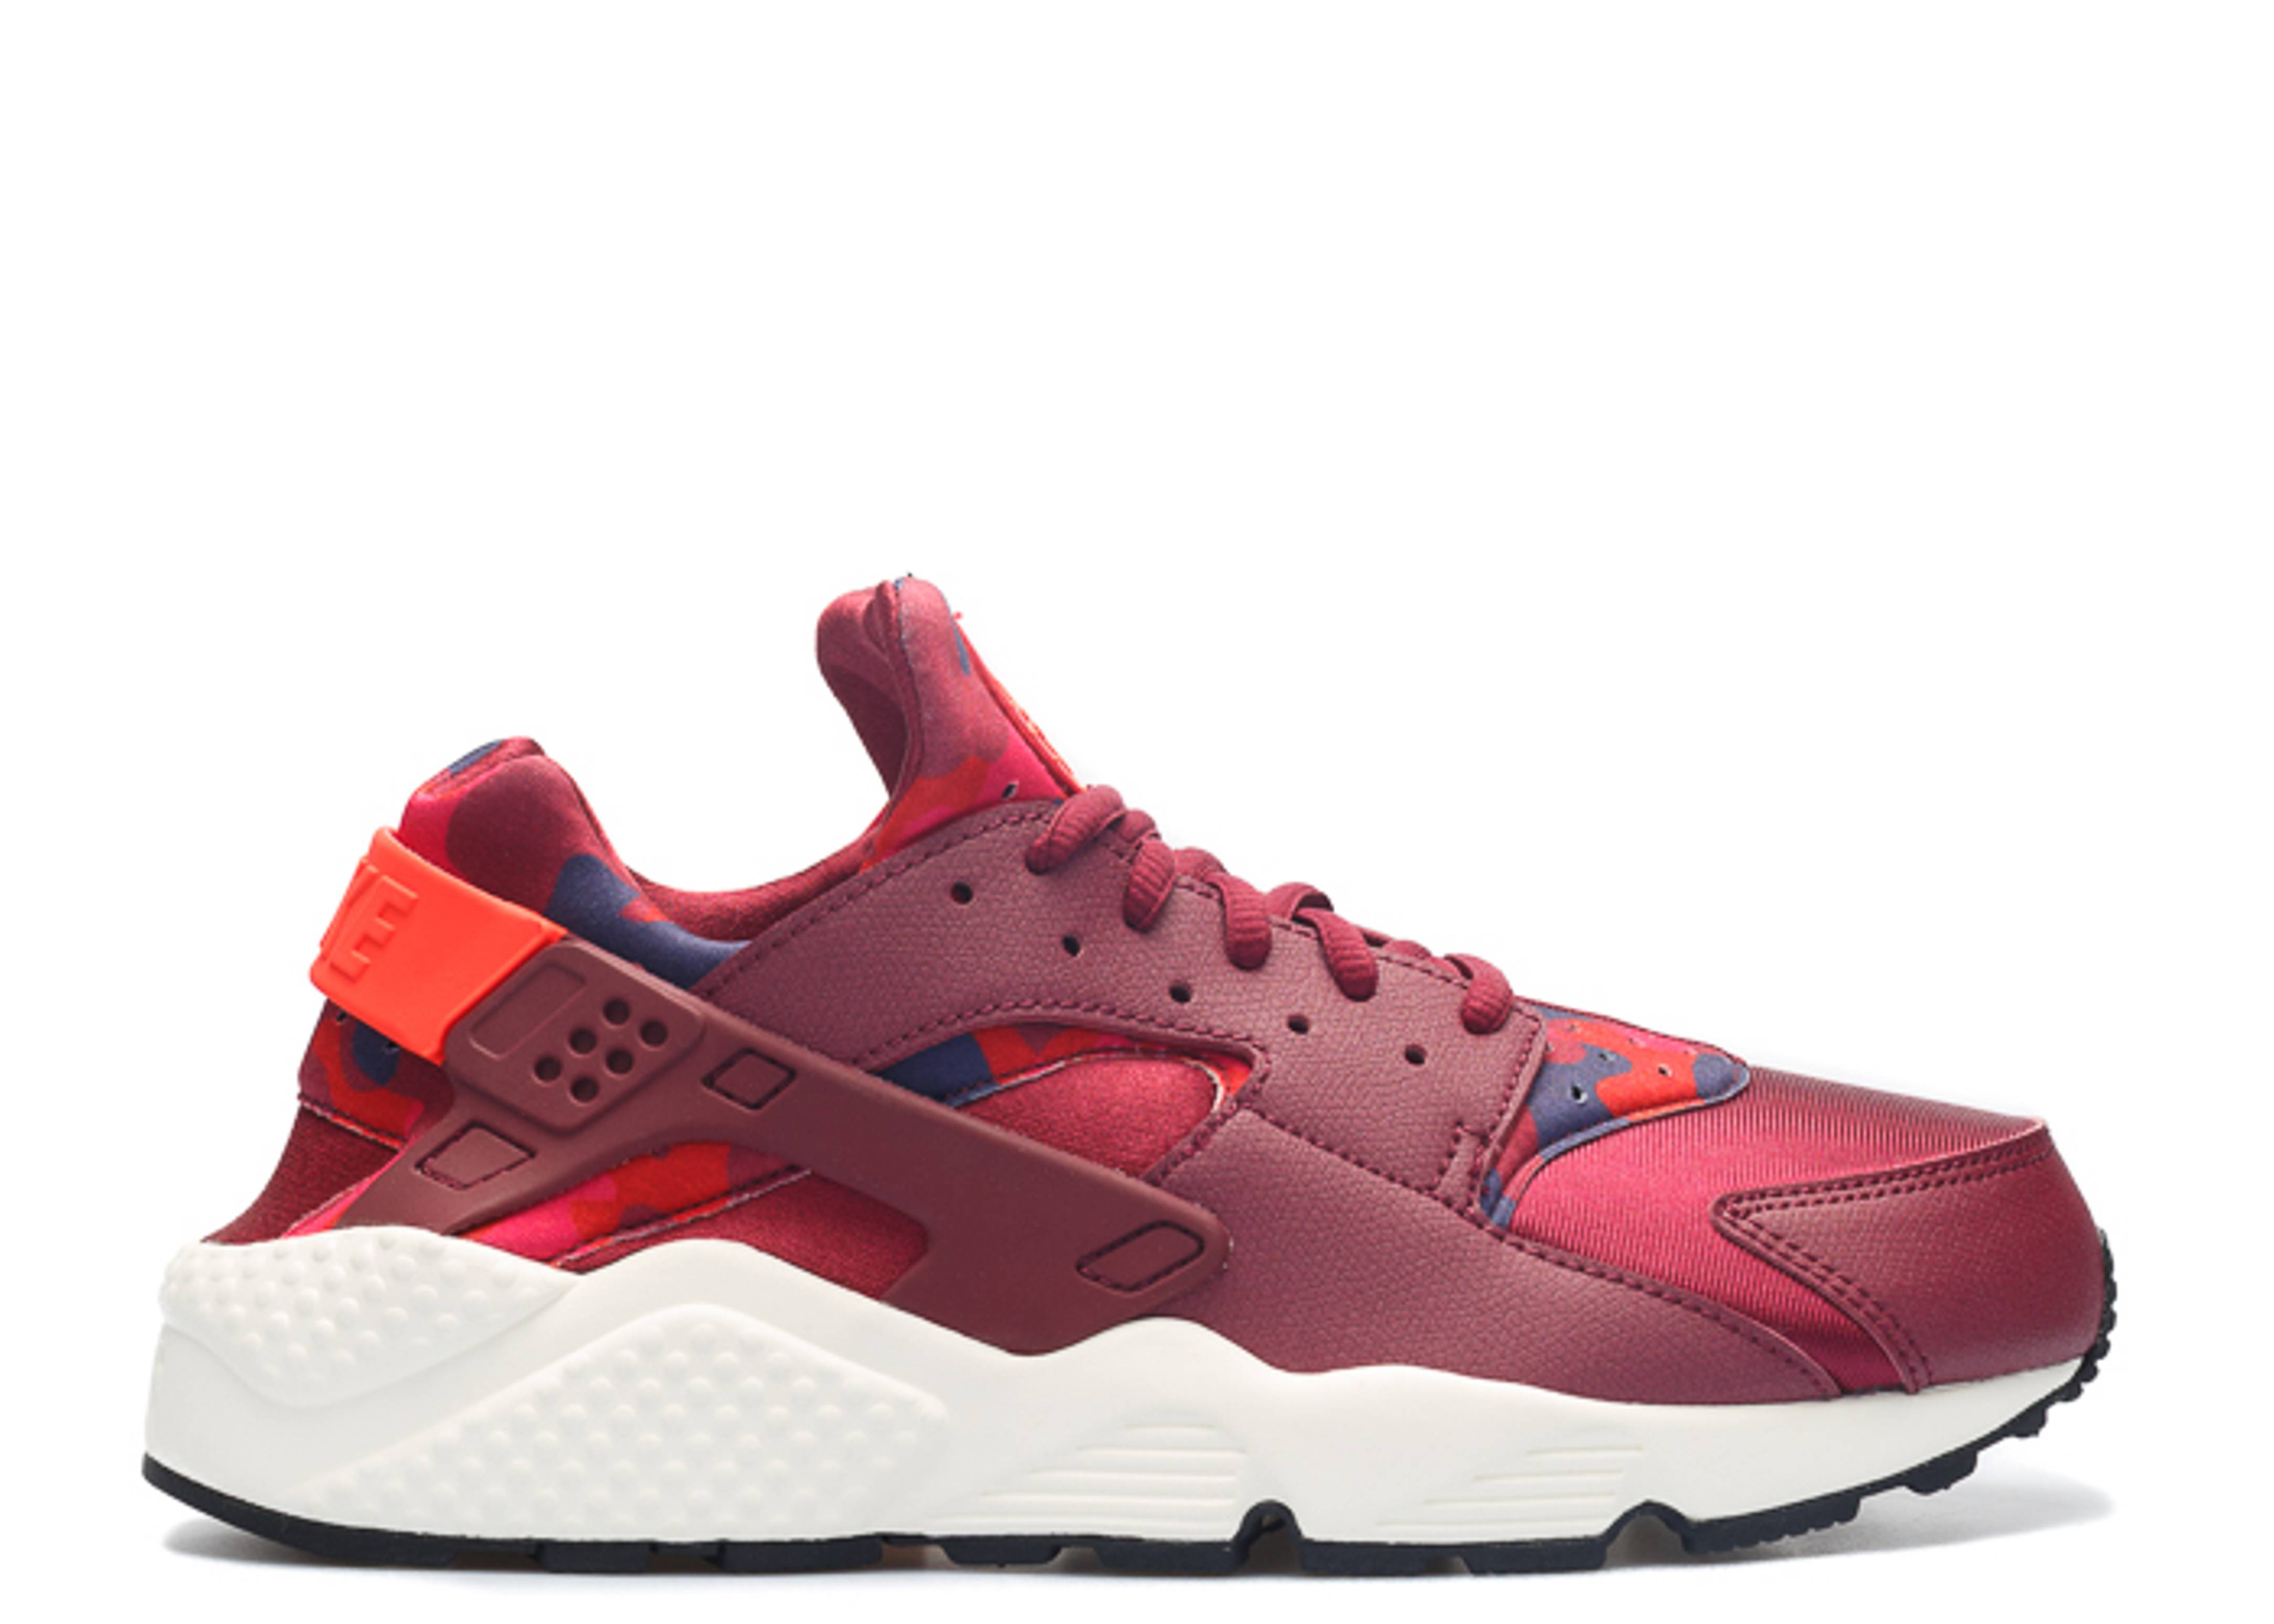 da993d55227dd W s Air Huarache Run Print - Nike - 725076 602 - deep garnet bright ...